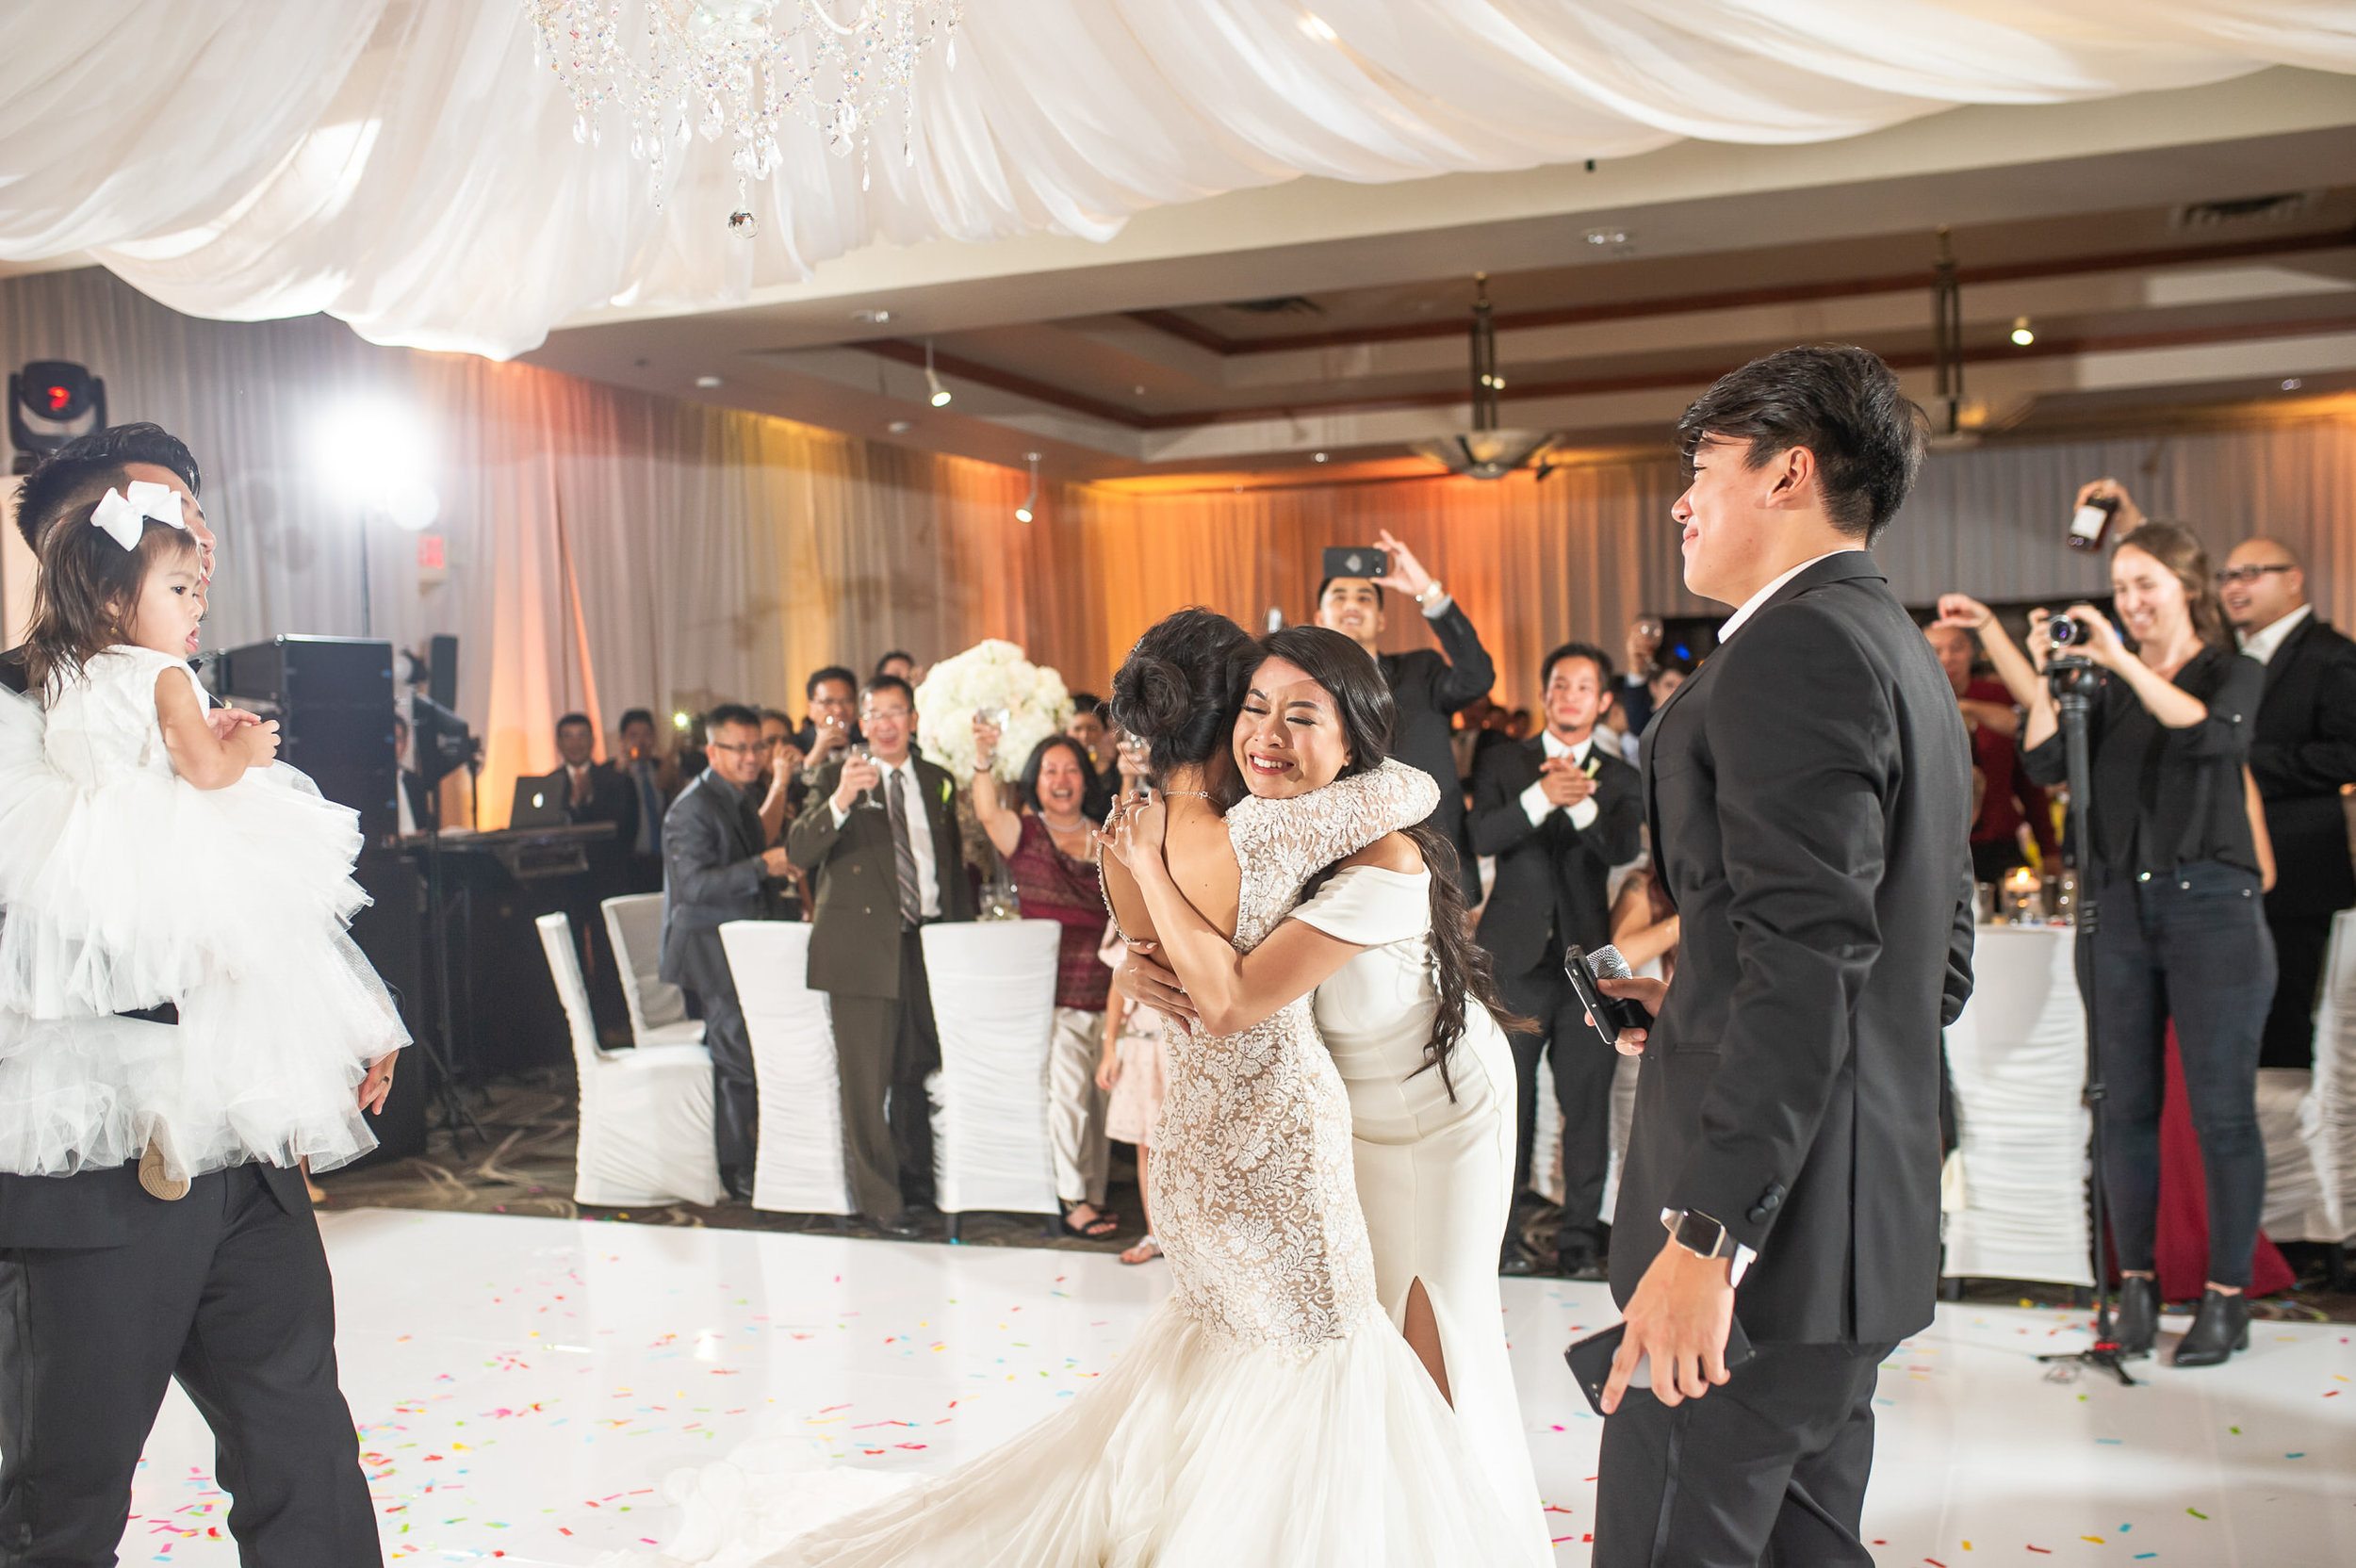 Dream_Wedding_Thanh_Thanh-21257.jpg